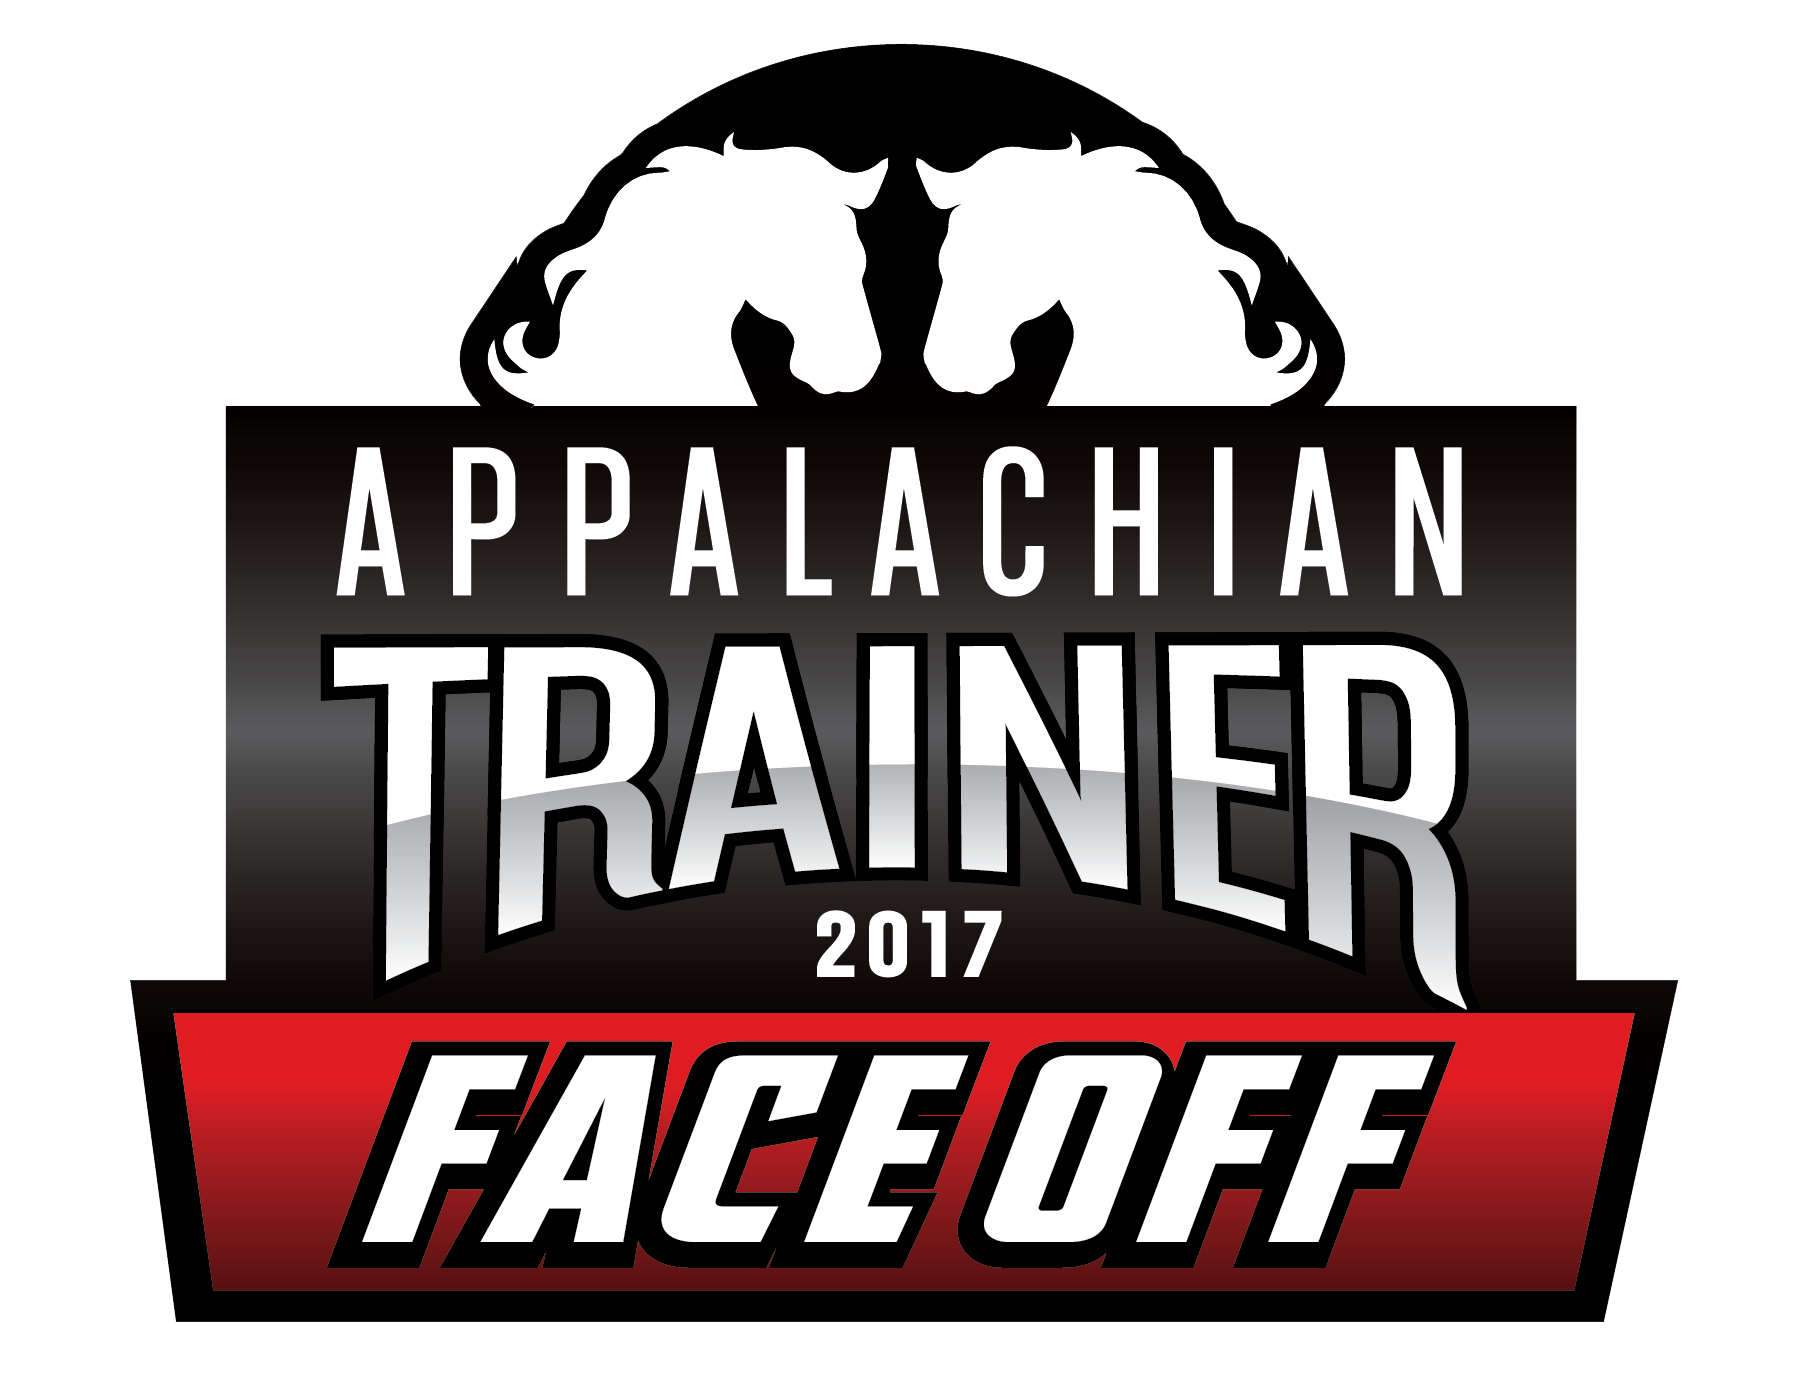 The Official Site of the Appalachian Face-Off